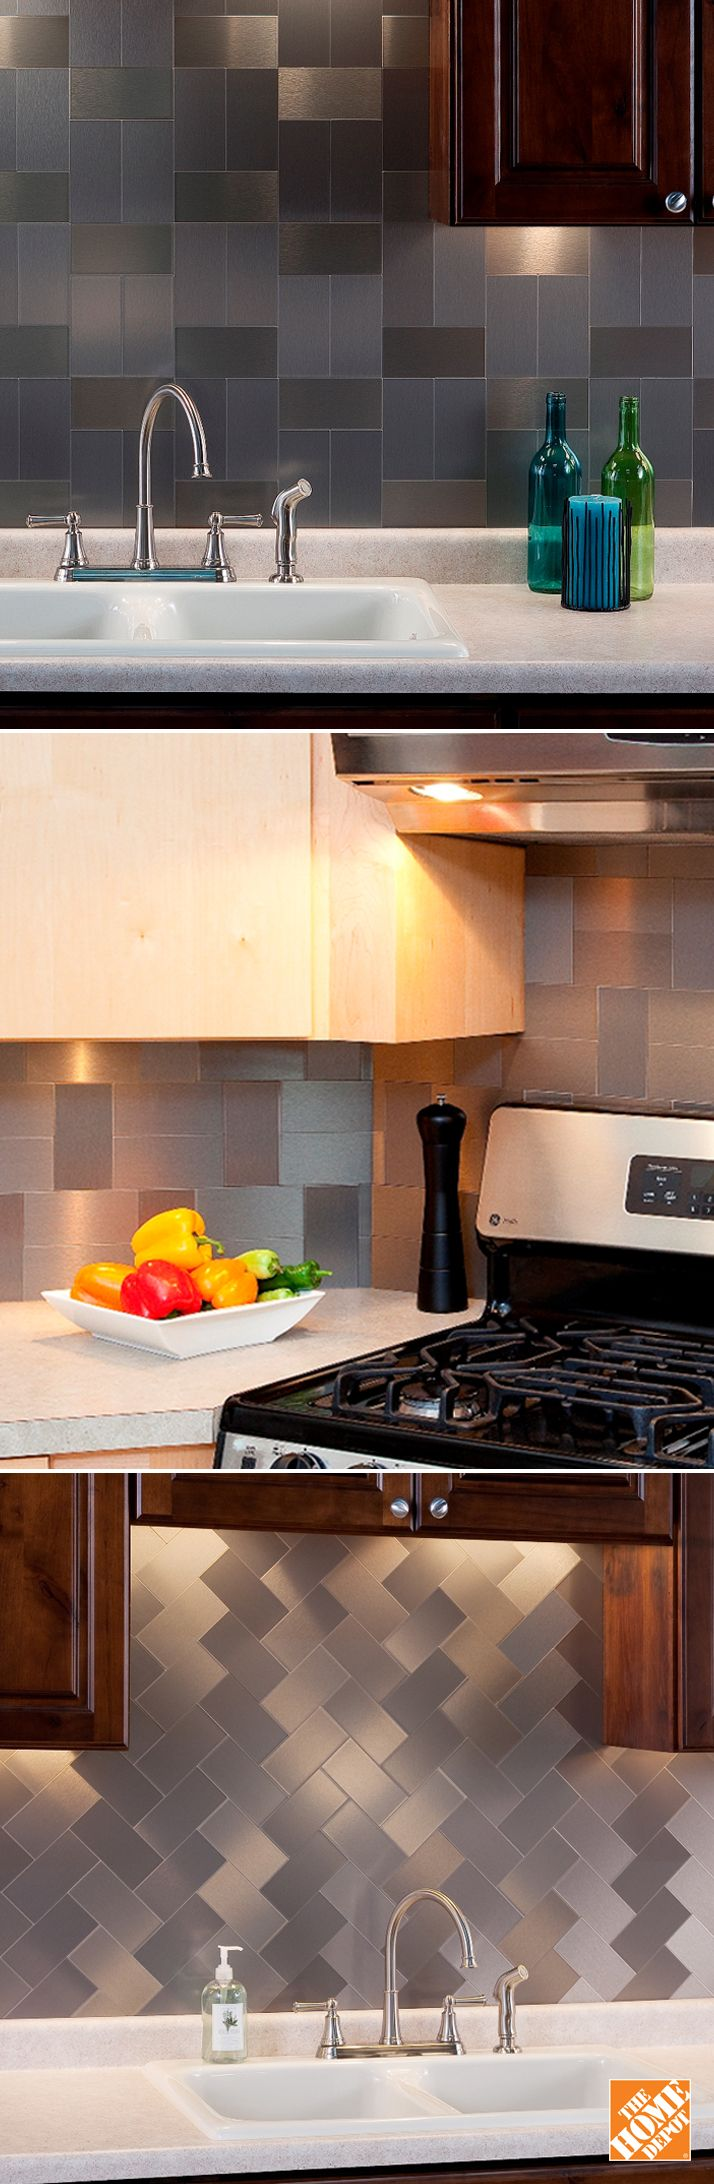 Stainless Steel Backsplash Tile Is A Simple And Stylish